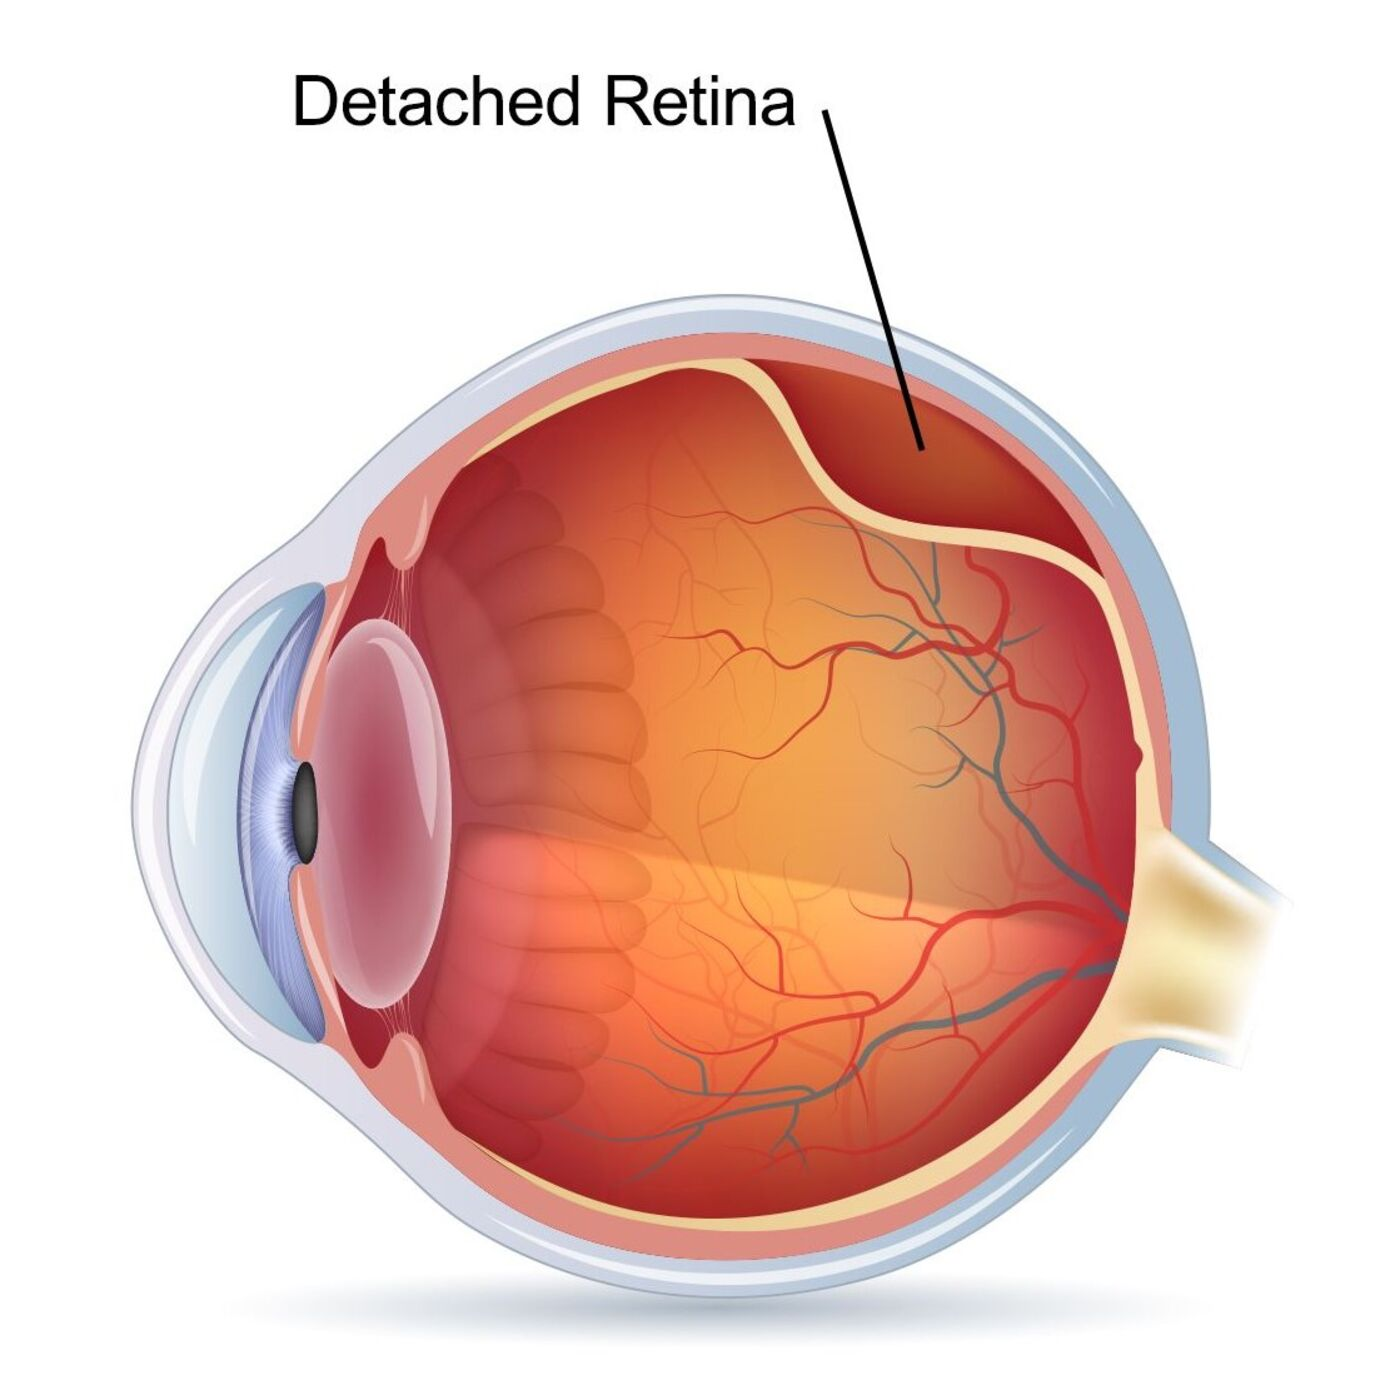 Ep. 011: Everything You Wanted to Know About Retinal Detachments with Sugat Patel, MD